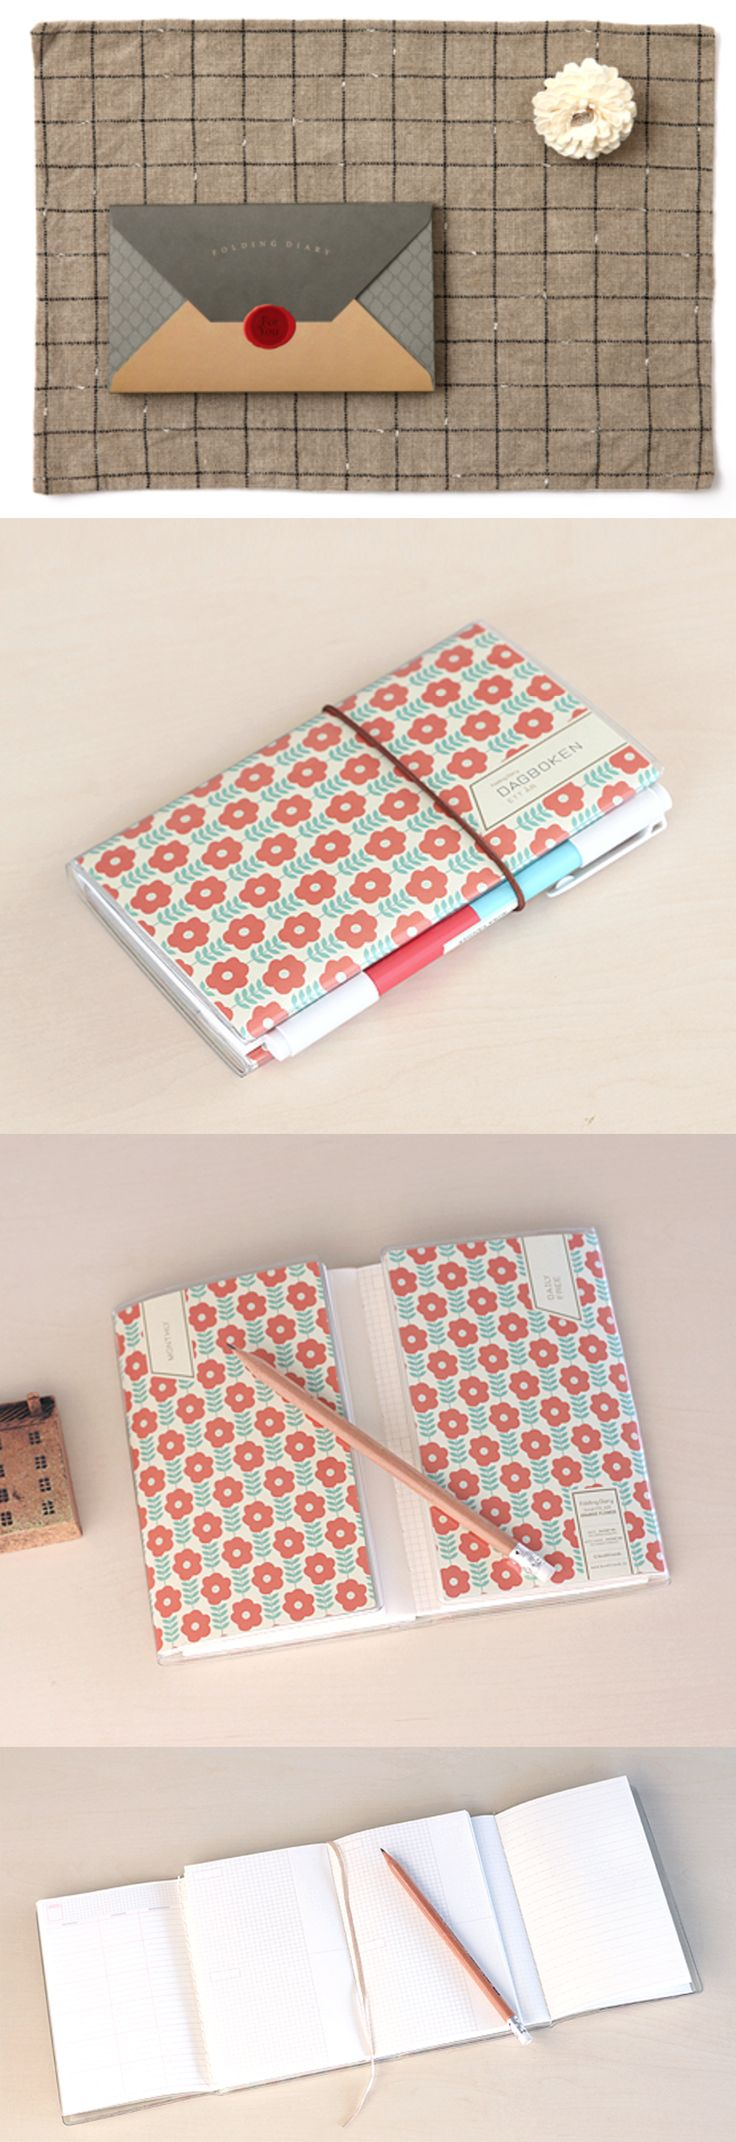 As they say, great things come in small packages and the Small Nordic Pattern Scheduler is no exception! It's easy to store, a great travel companion and conveniently unfolds, so you can see all your plans at once!